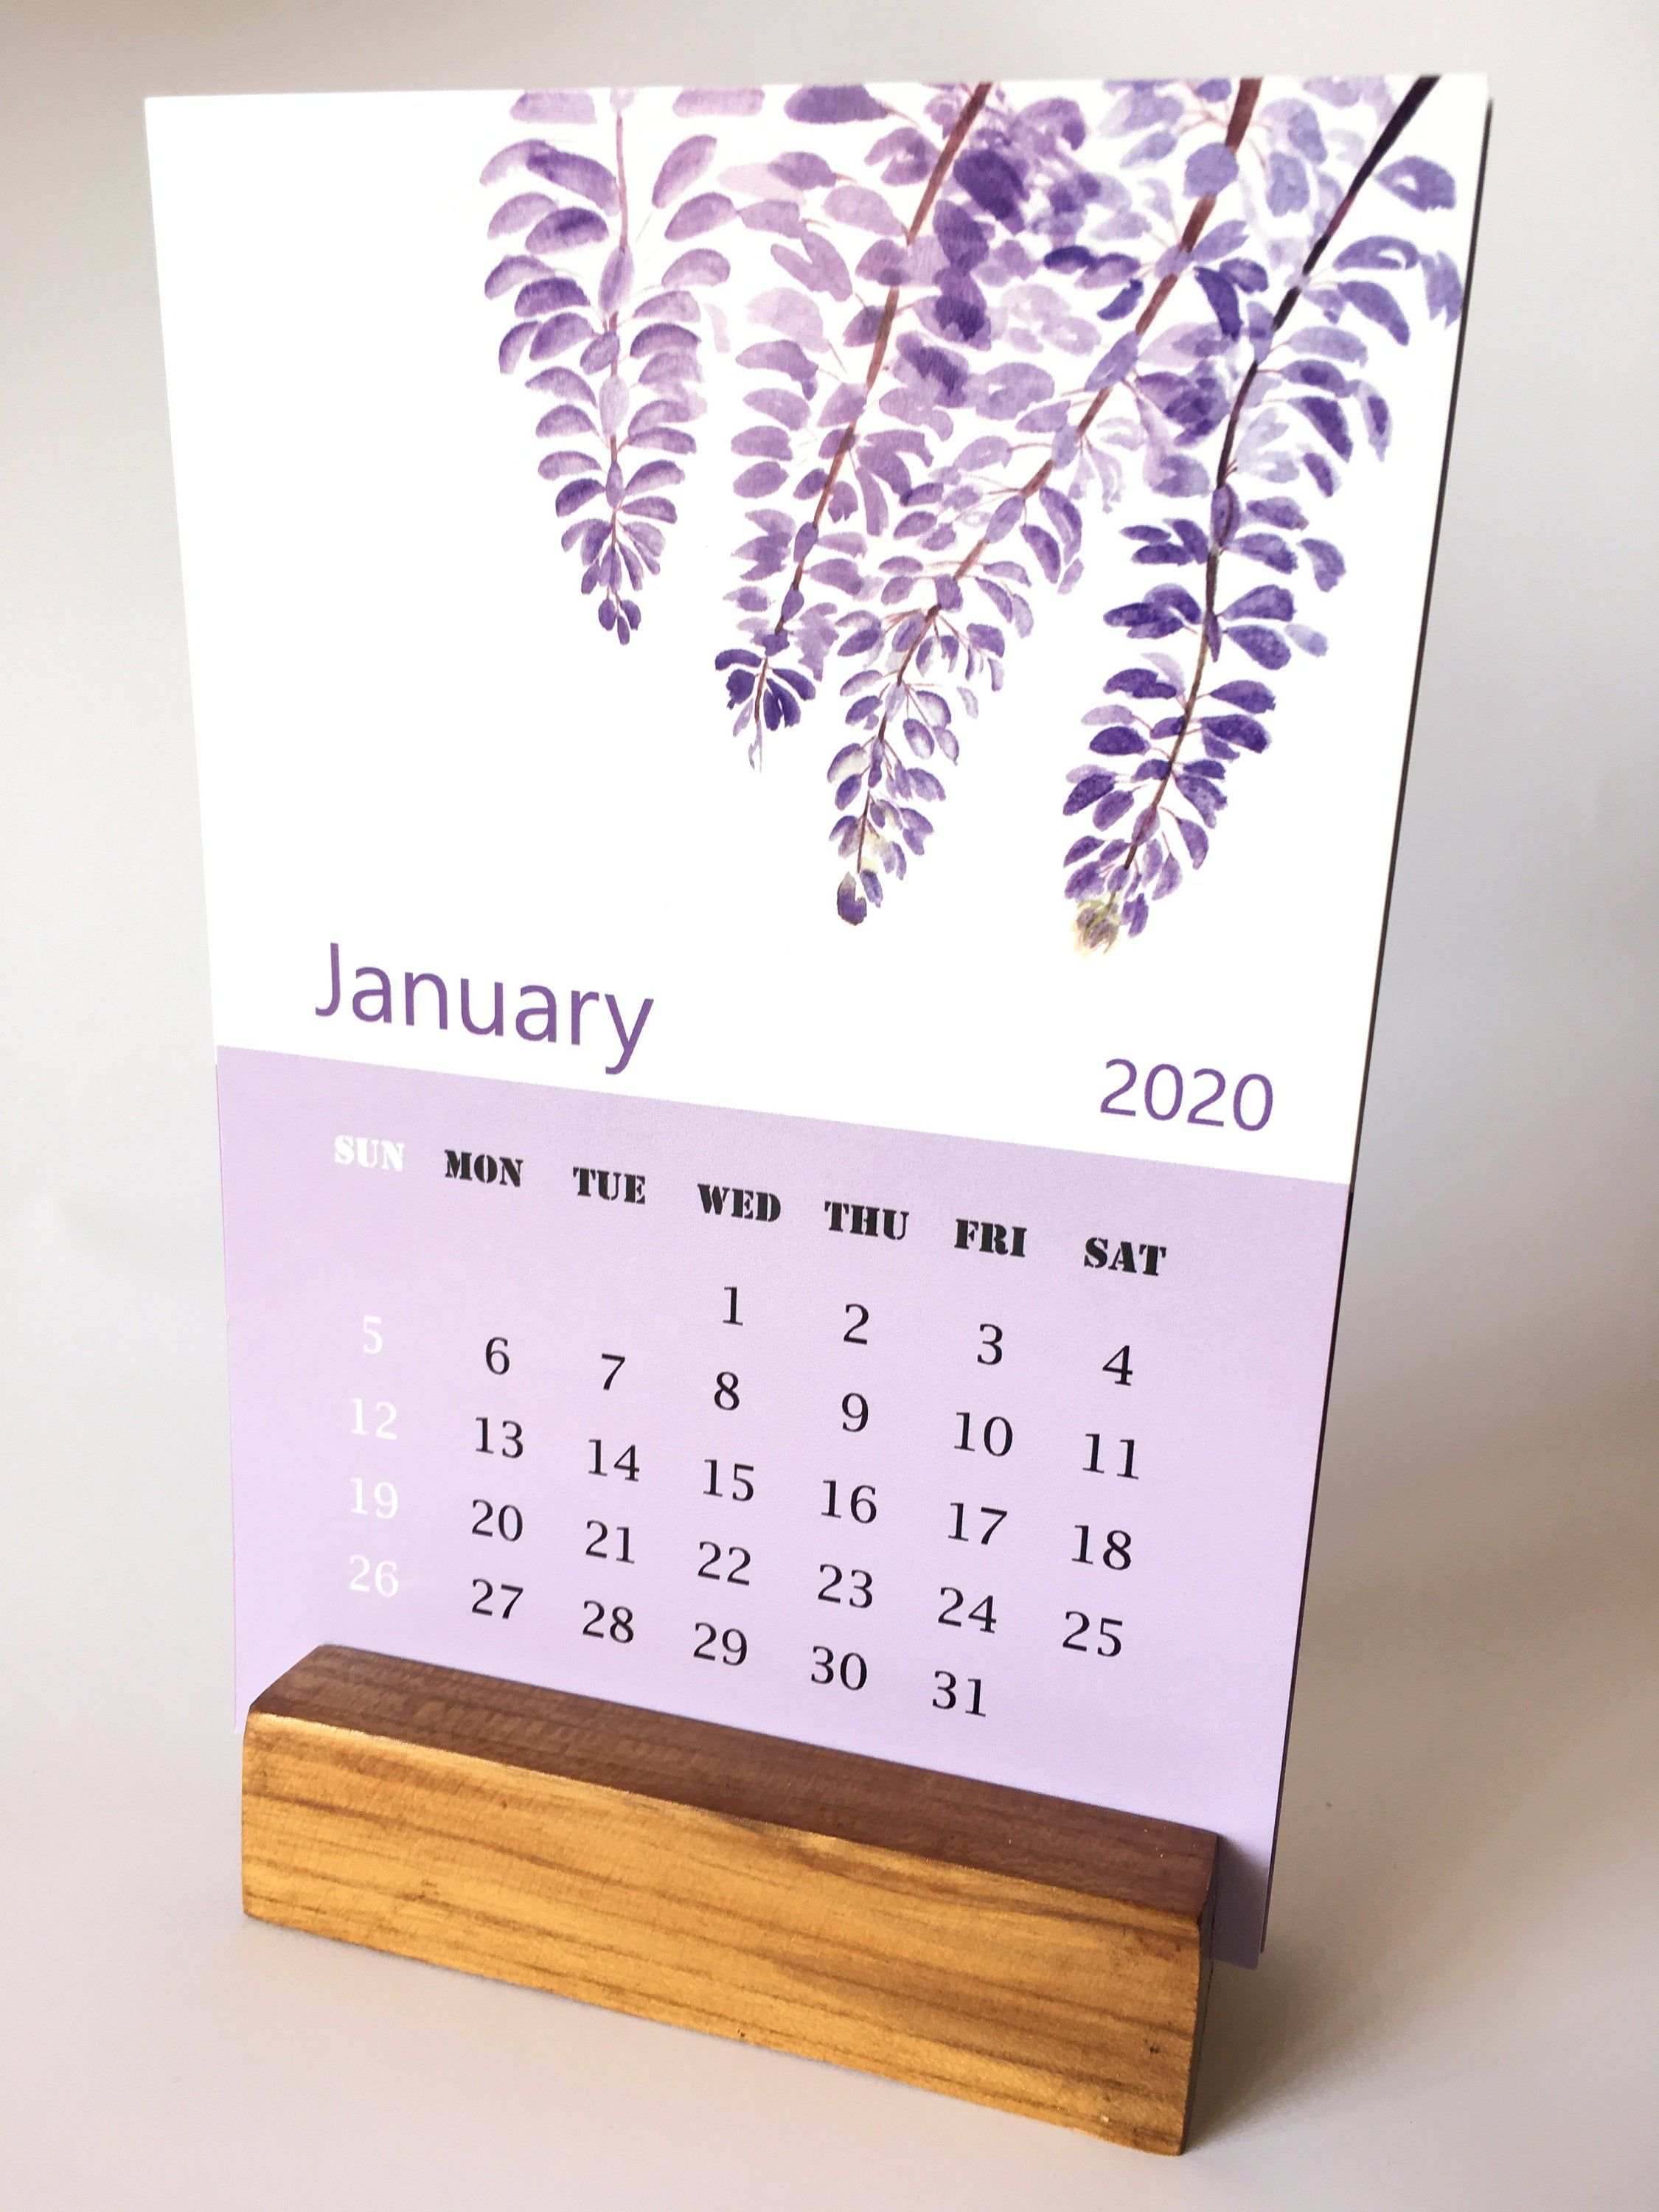 Mica 2021 Calendar Handmade Gold metallic watercolor  Non toxic metallic watercolors